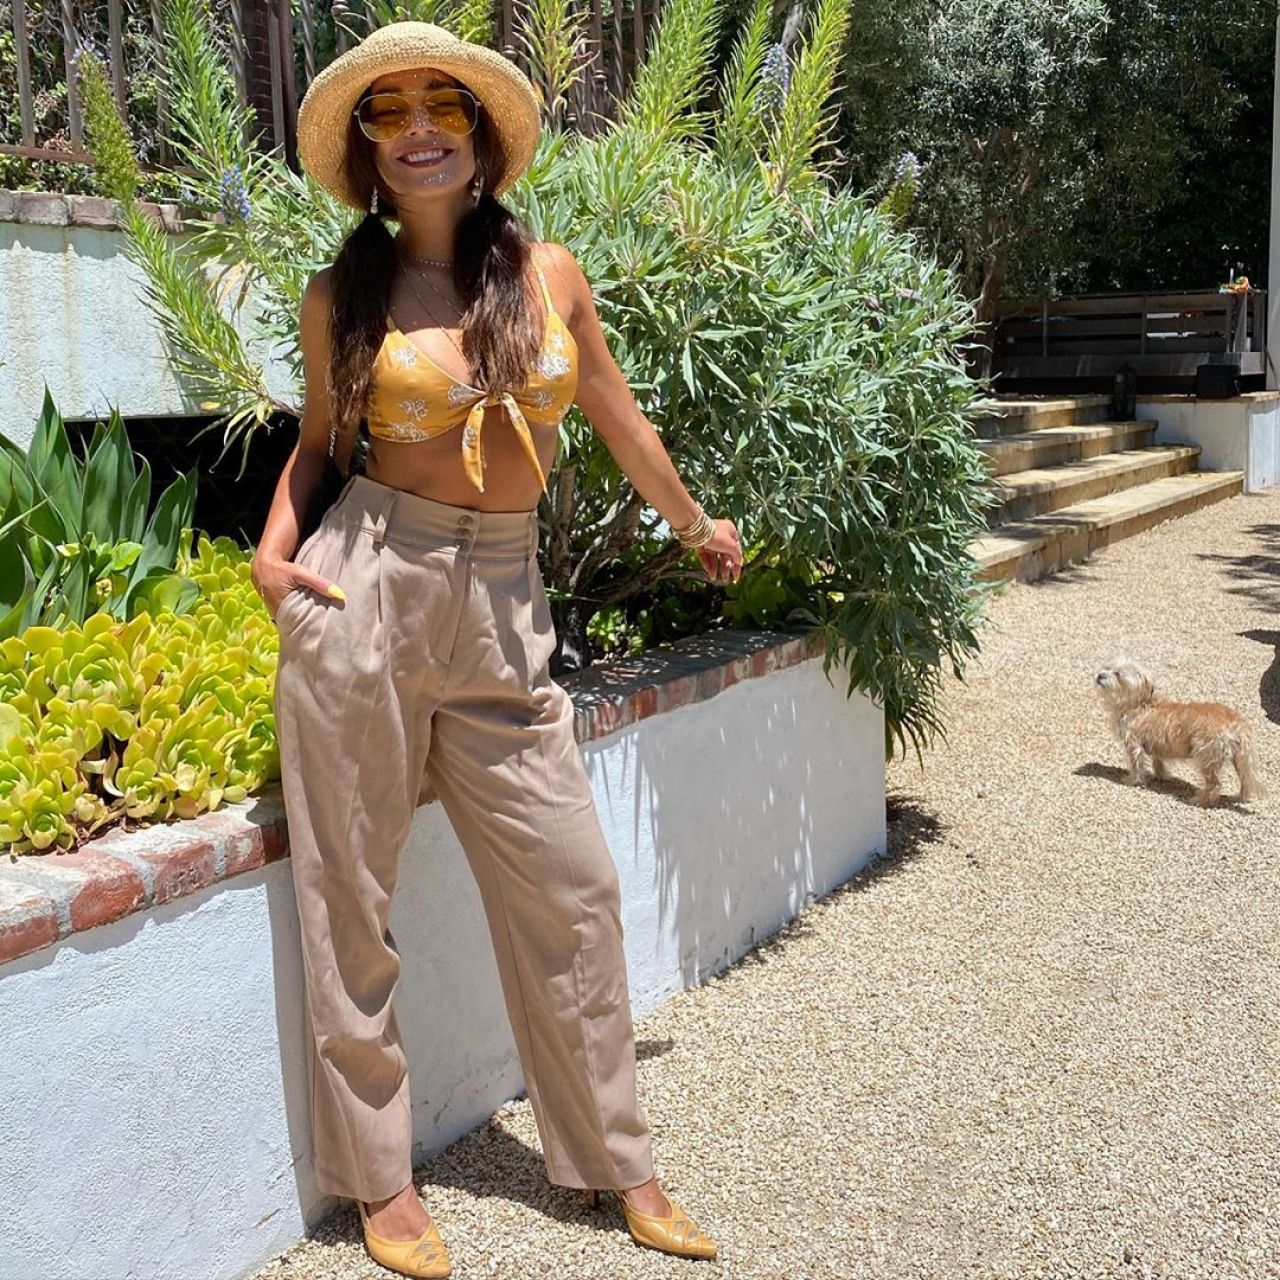 vanessa-hudgens-posted-her-outfit-for-05-17-2020-on-instagram